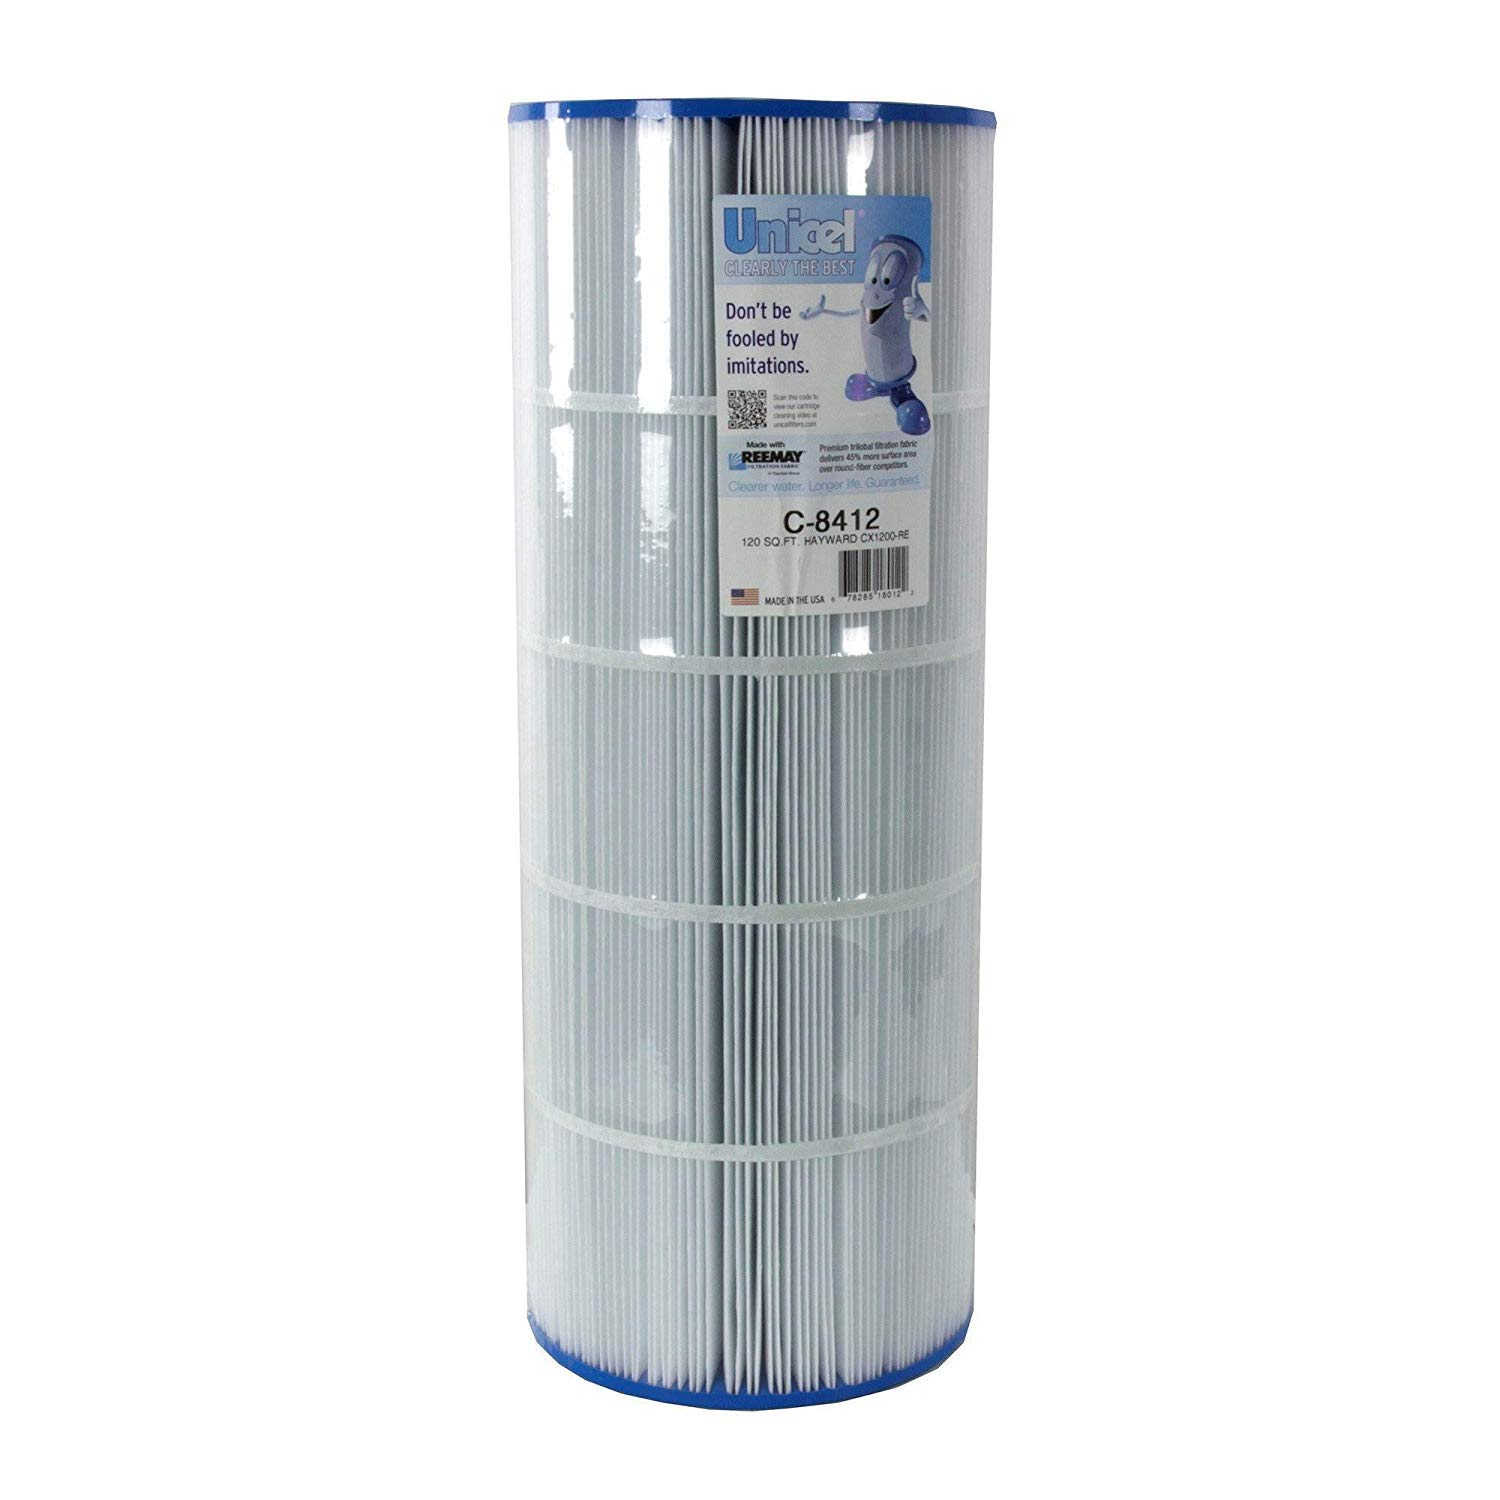 Unicel C-8412 Replacement Filter Cartridge for 120 Square Foot Hayward CX1200RE, Waterway Pro Clean 125, Waterway Clearwater II 125 by Unicel